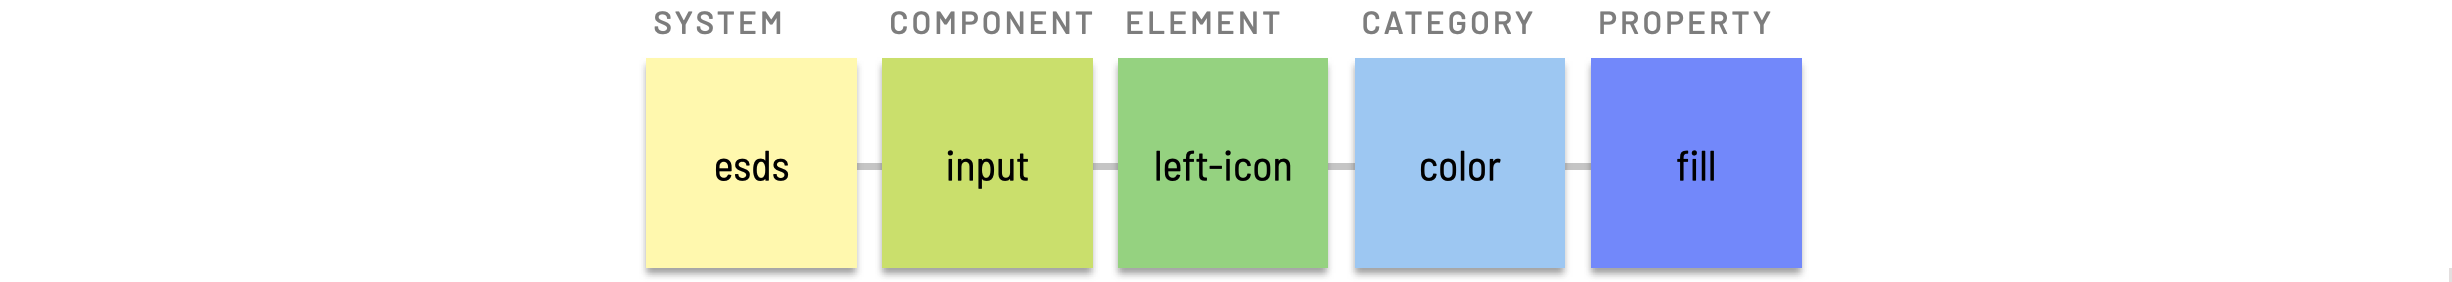 Nested element token example